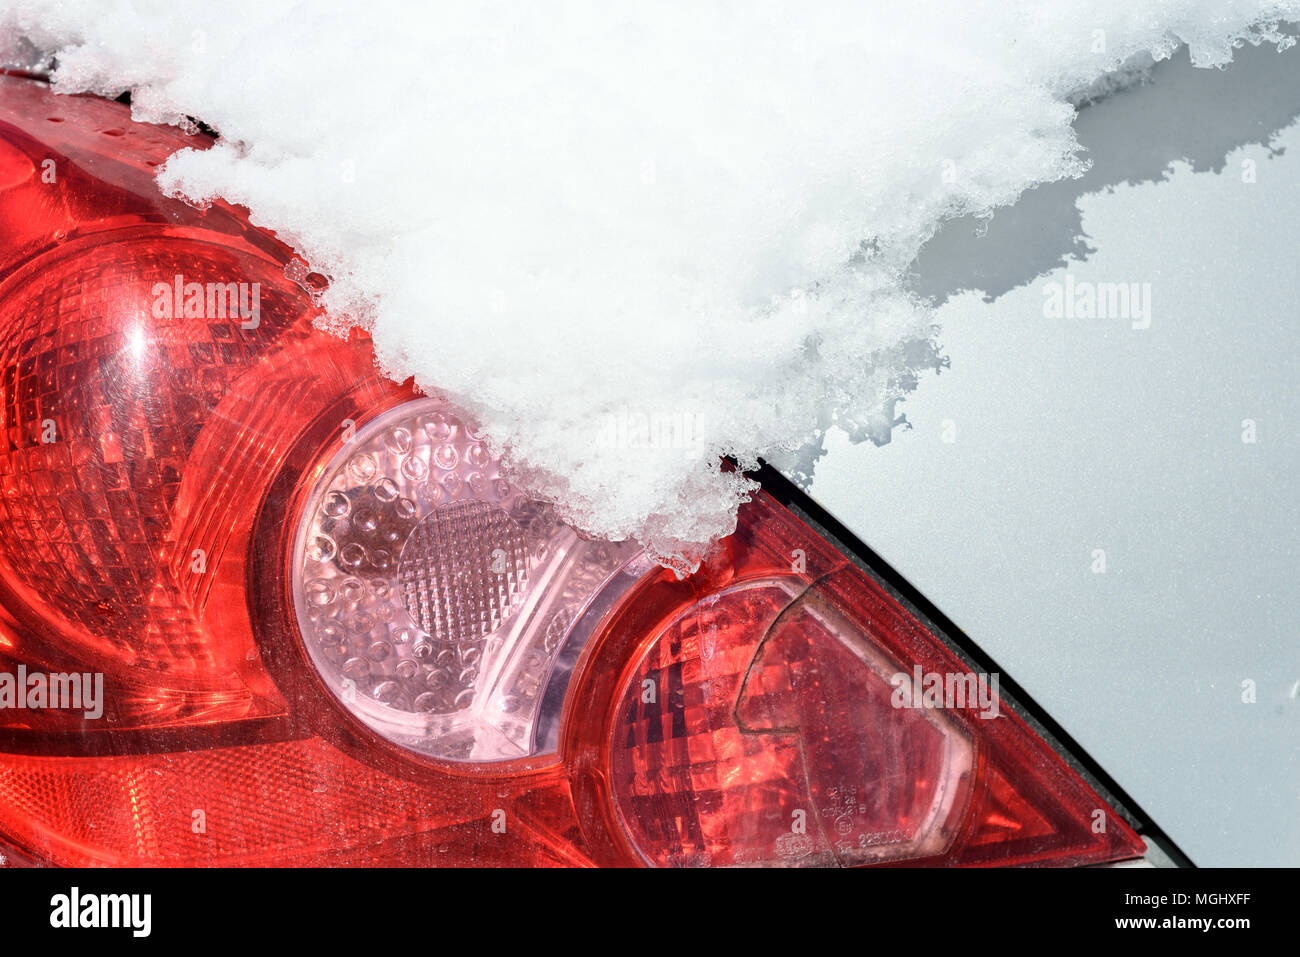 Car rear view light and indicator covered and obscured in a thick blanket of winter snow. Copy space area for extreme weather travel and transport con Stock Photo